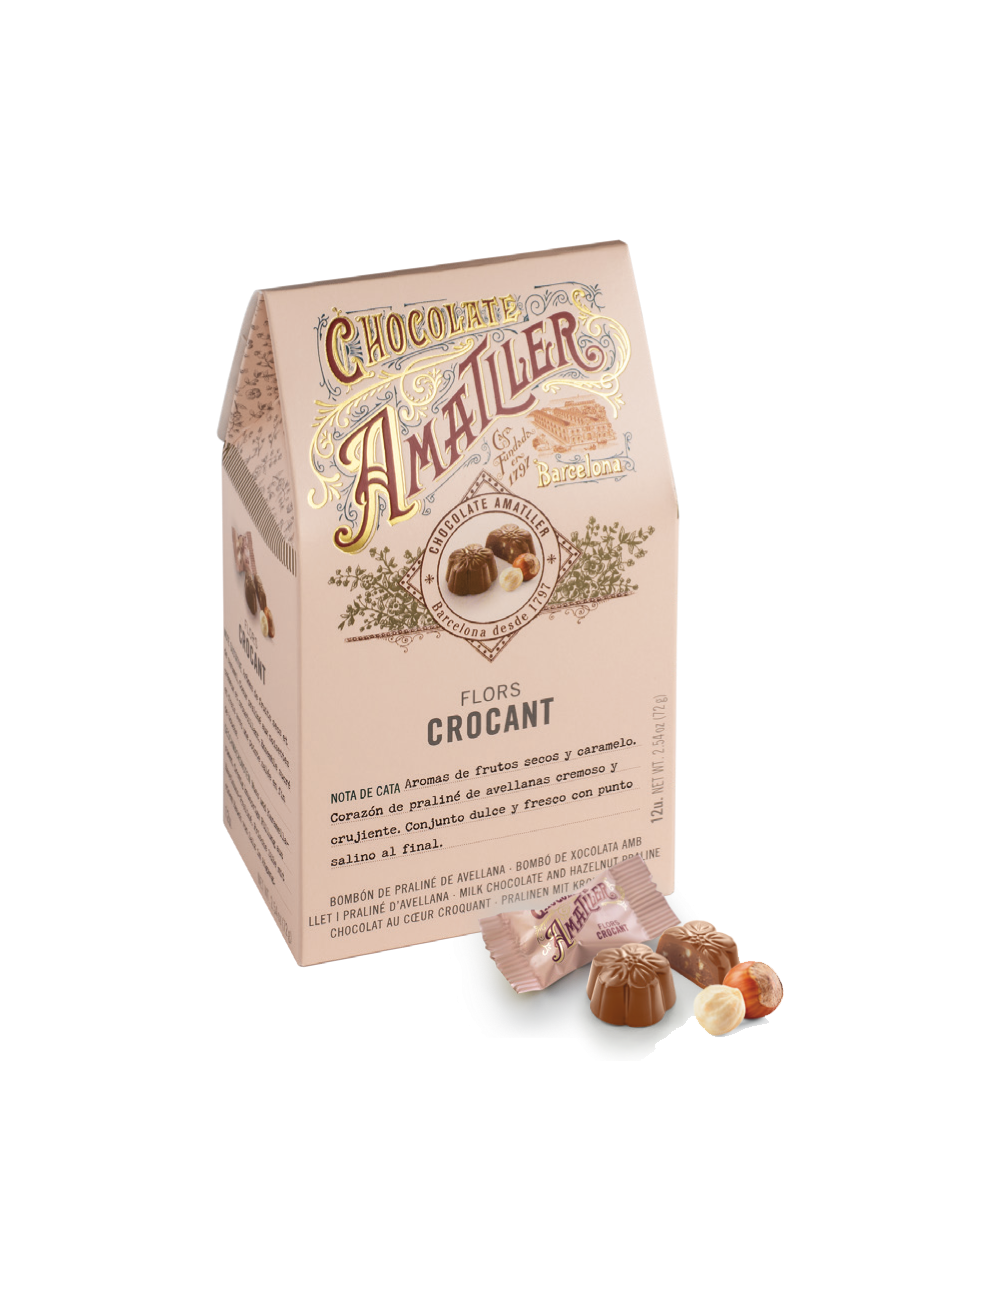 Flores de Chocolate con Leche al Crocant - Chocolate Amatller